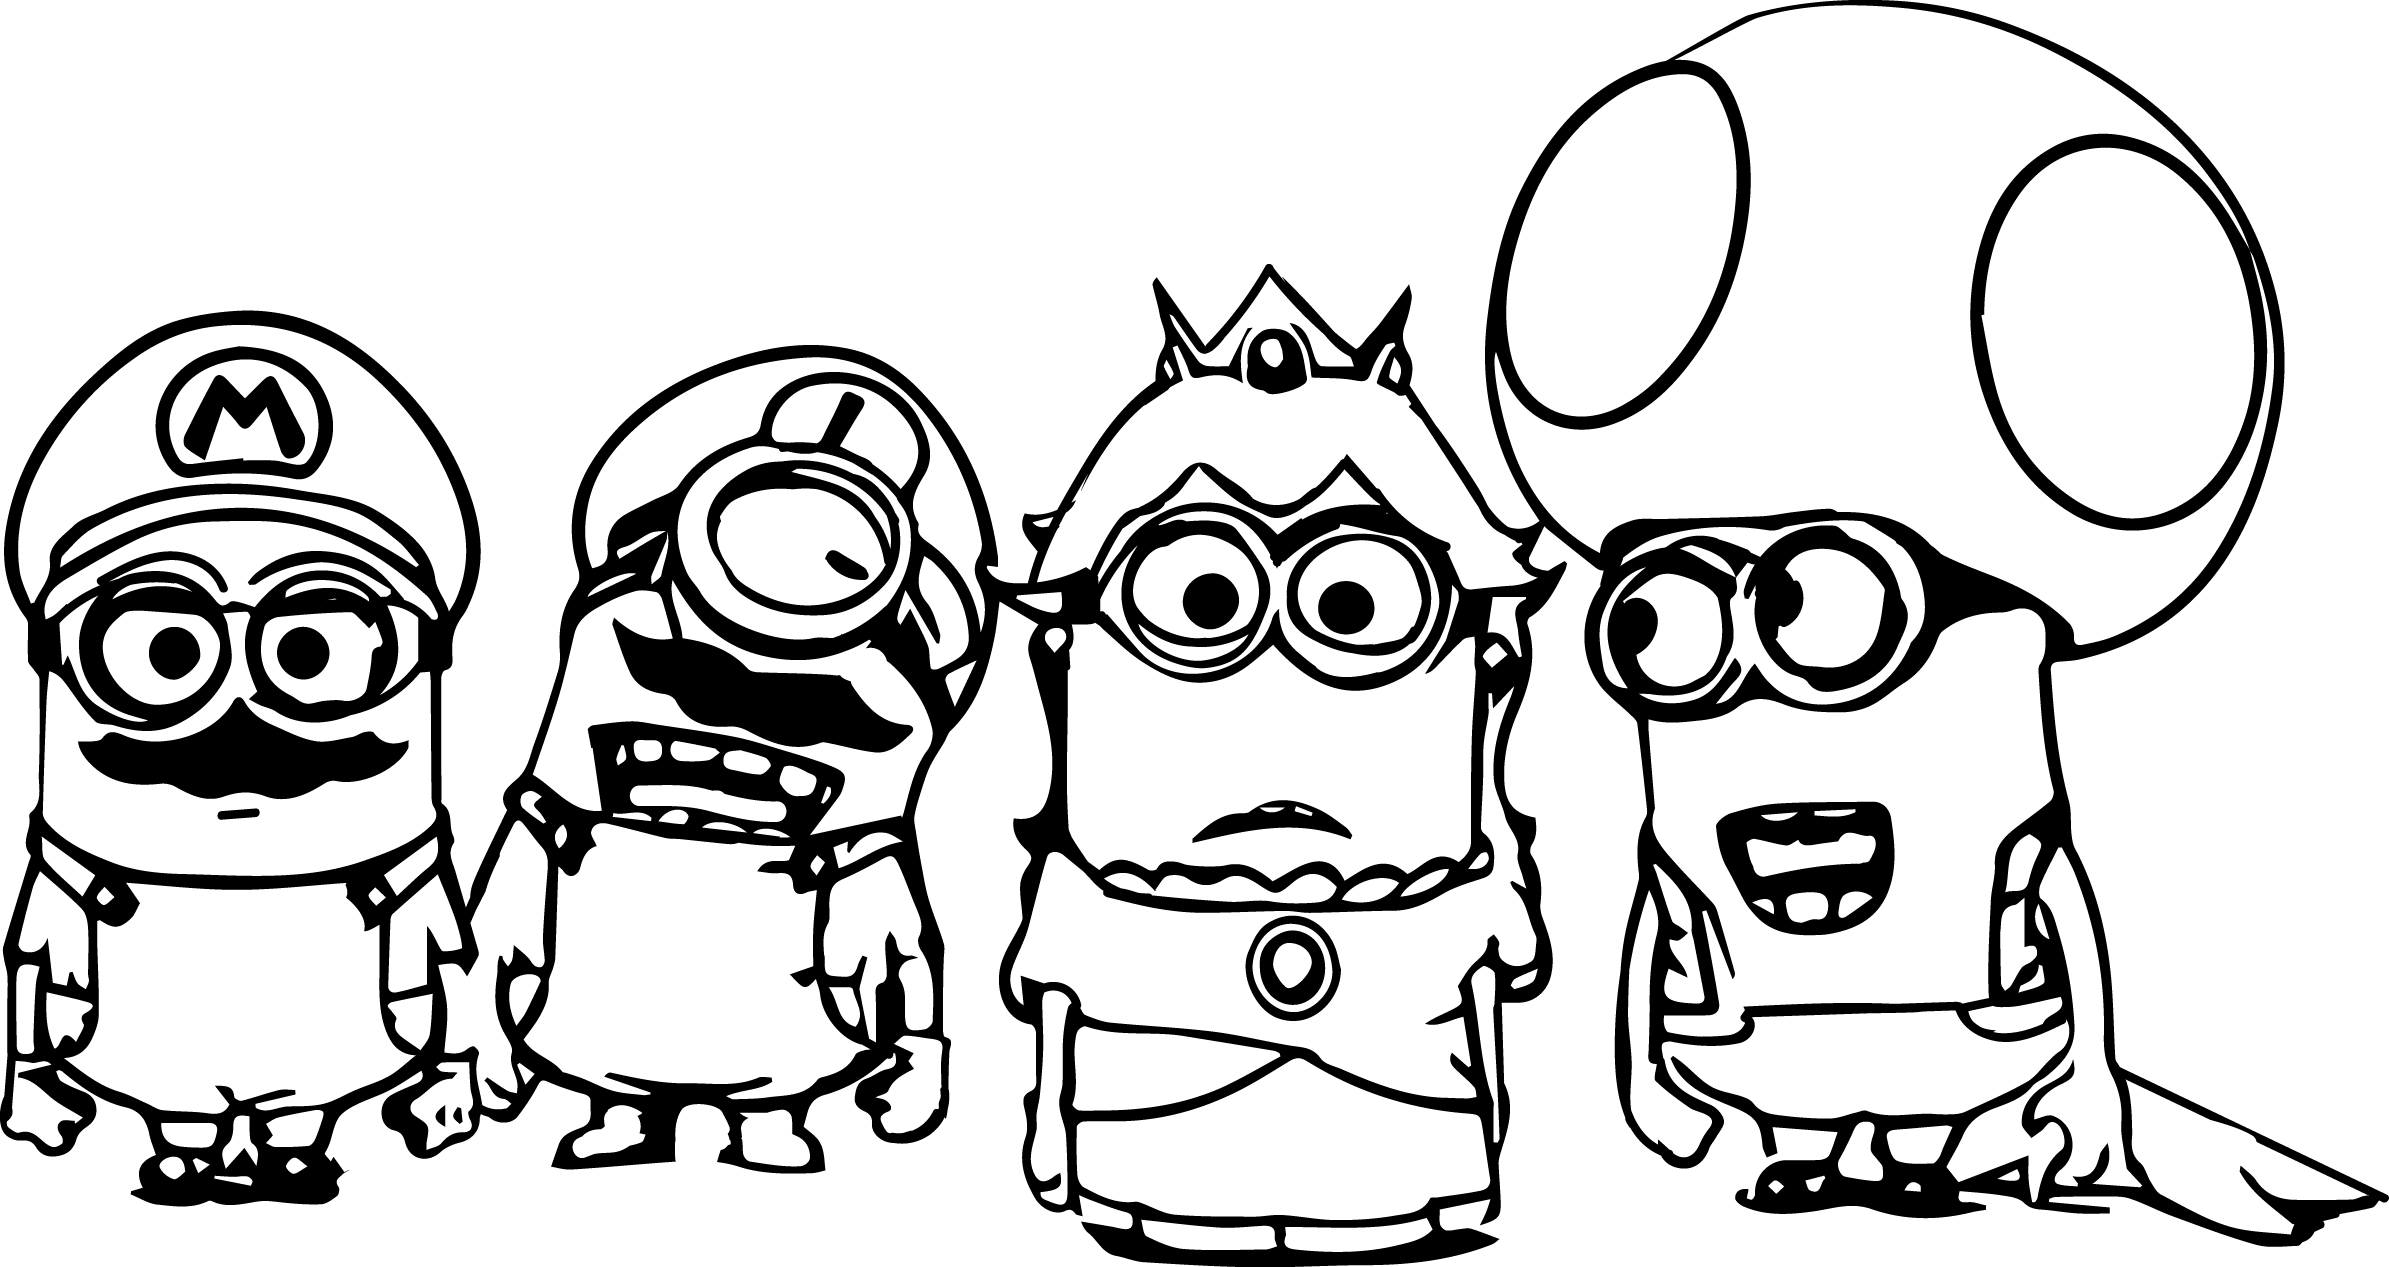 super coloring pages - super mario minions coloring page